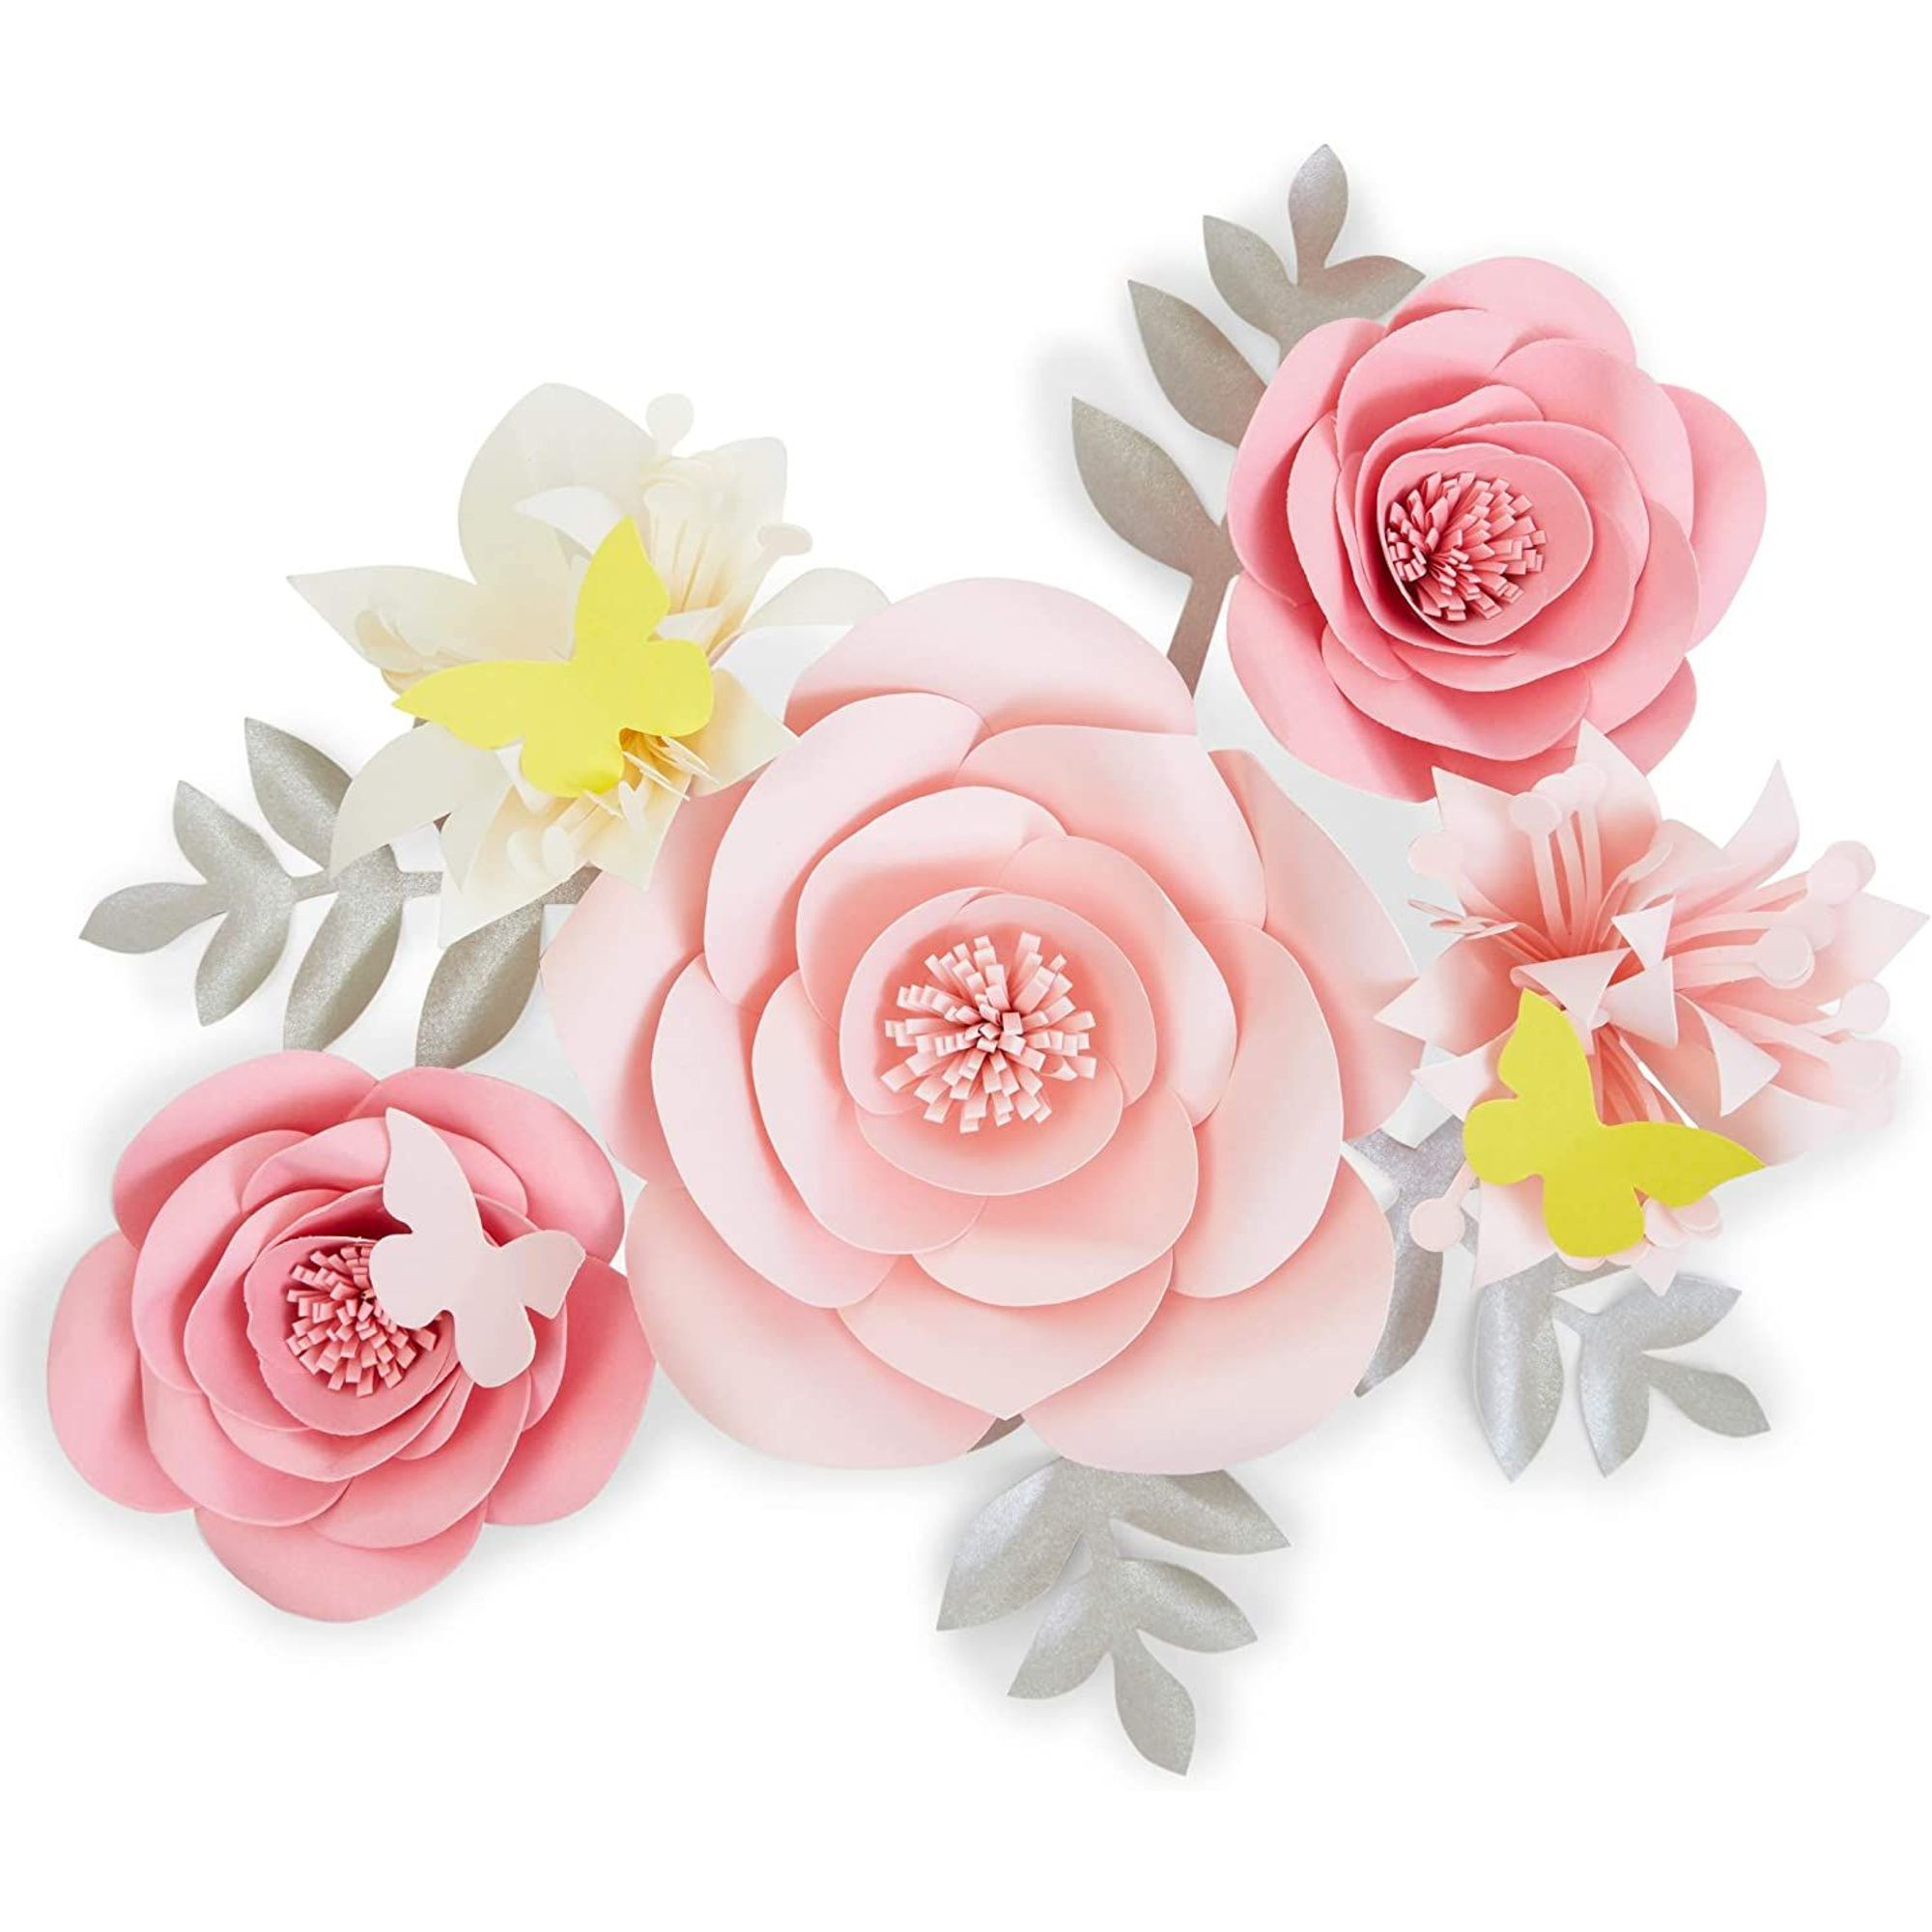 13 Piece Pink 3d Paper Flower Decoration For Wedding Party Backdrop Baby Shower Bridal Shower Wall Decor 5 9 Walmart Com Walmart Com